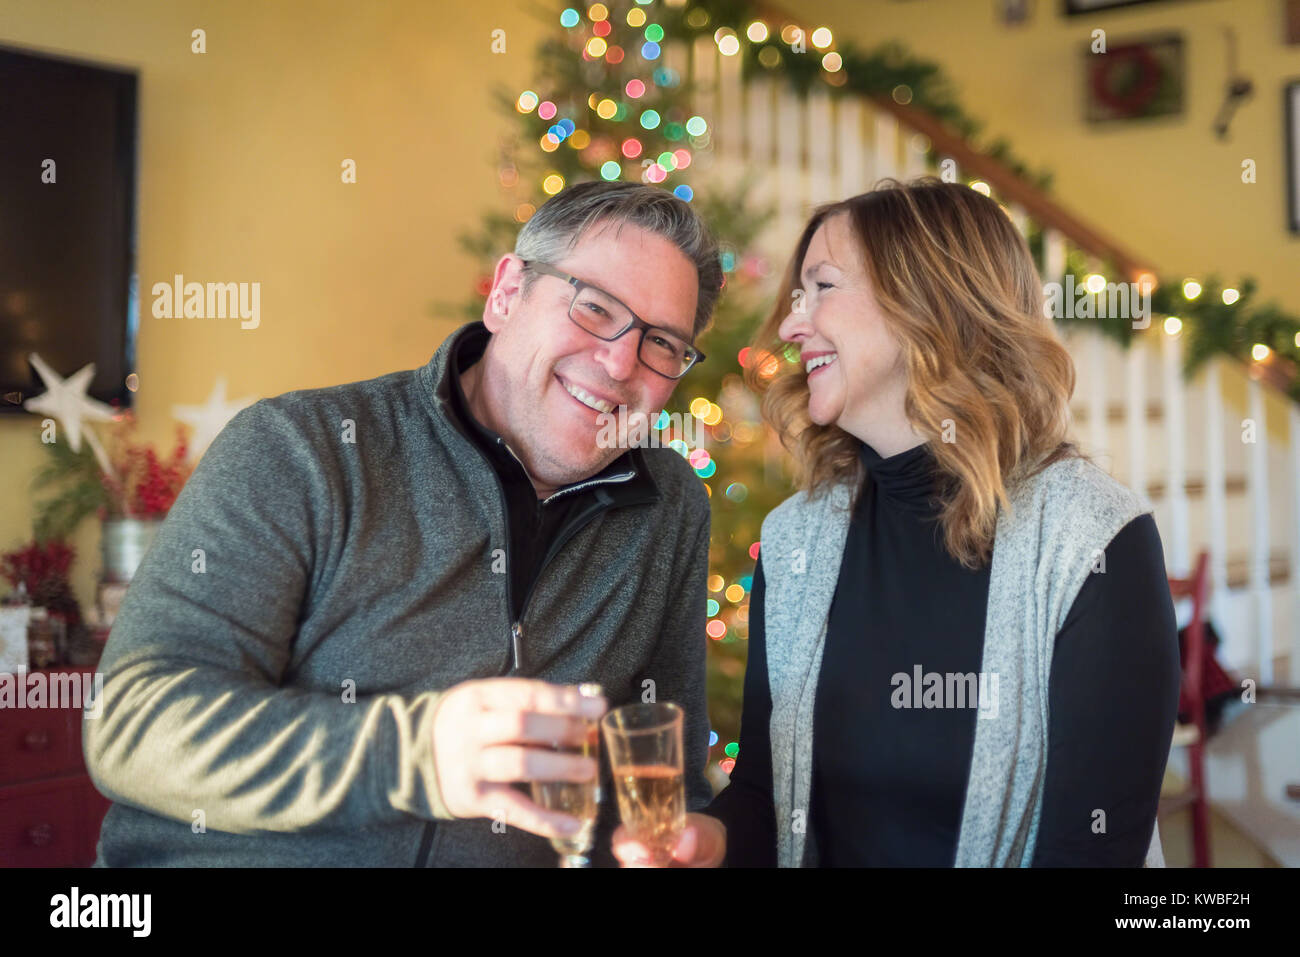 happy couple smiling and drinking champagne in front of christmas tree at home stock image